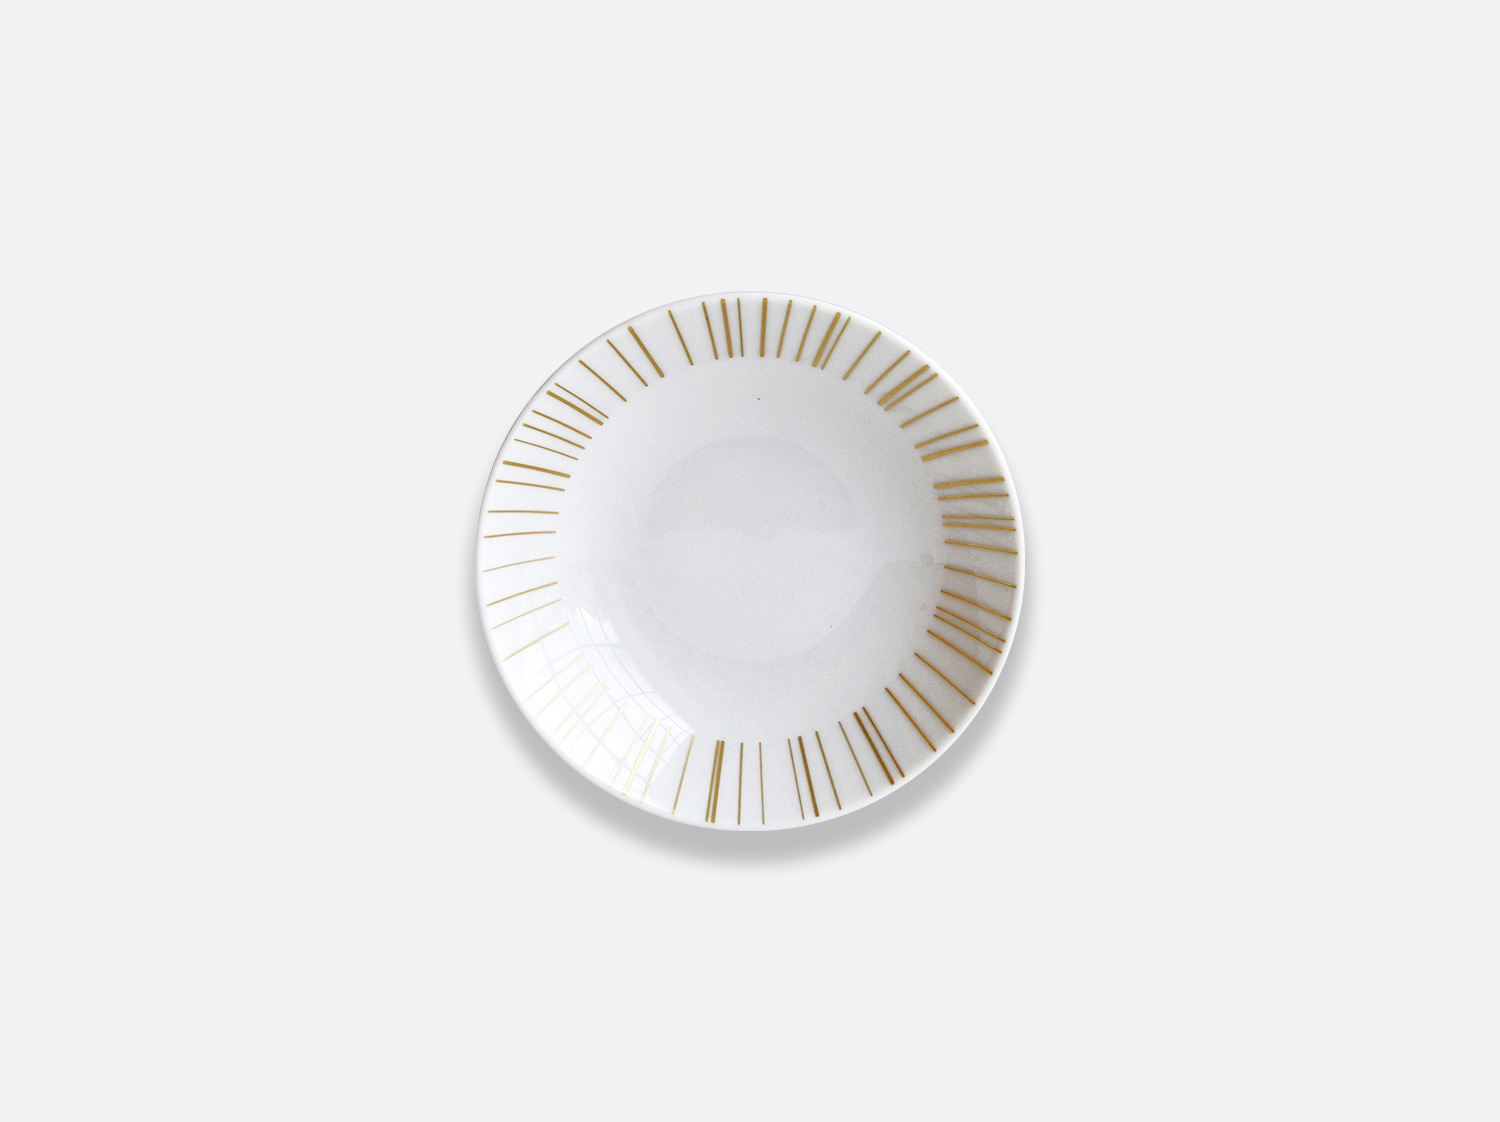 China Small dish 10 cm of the collection Sol | Bernardaud